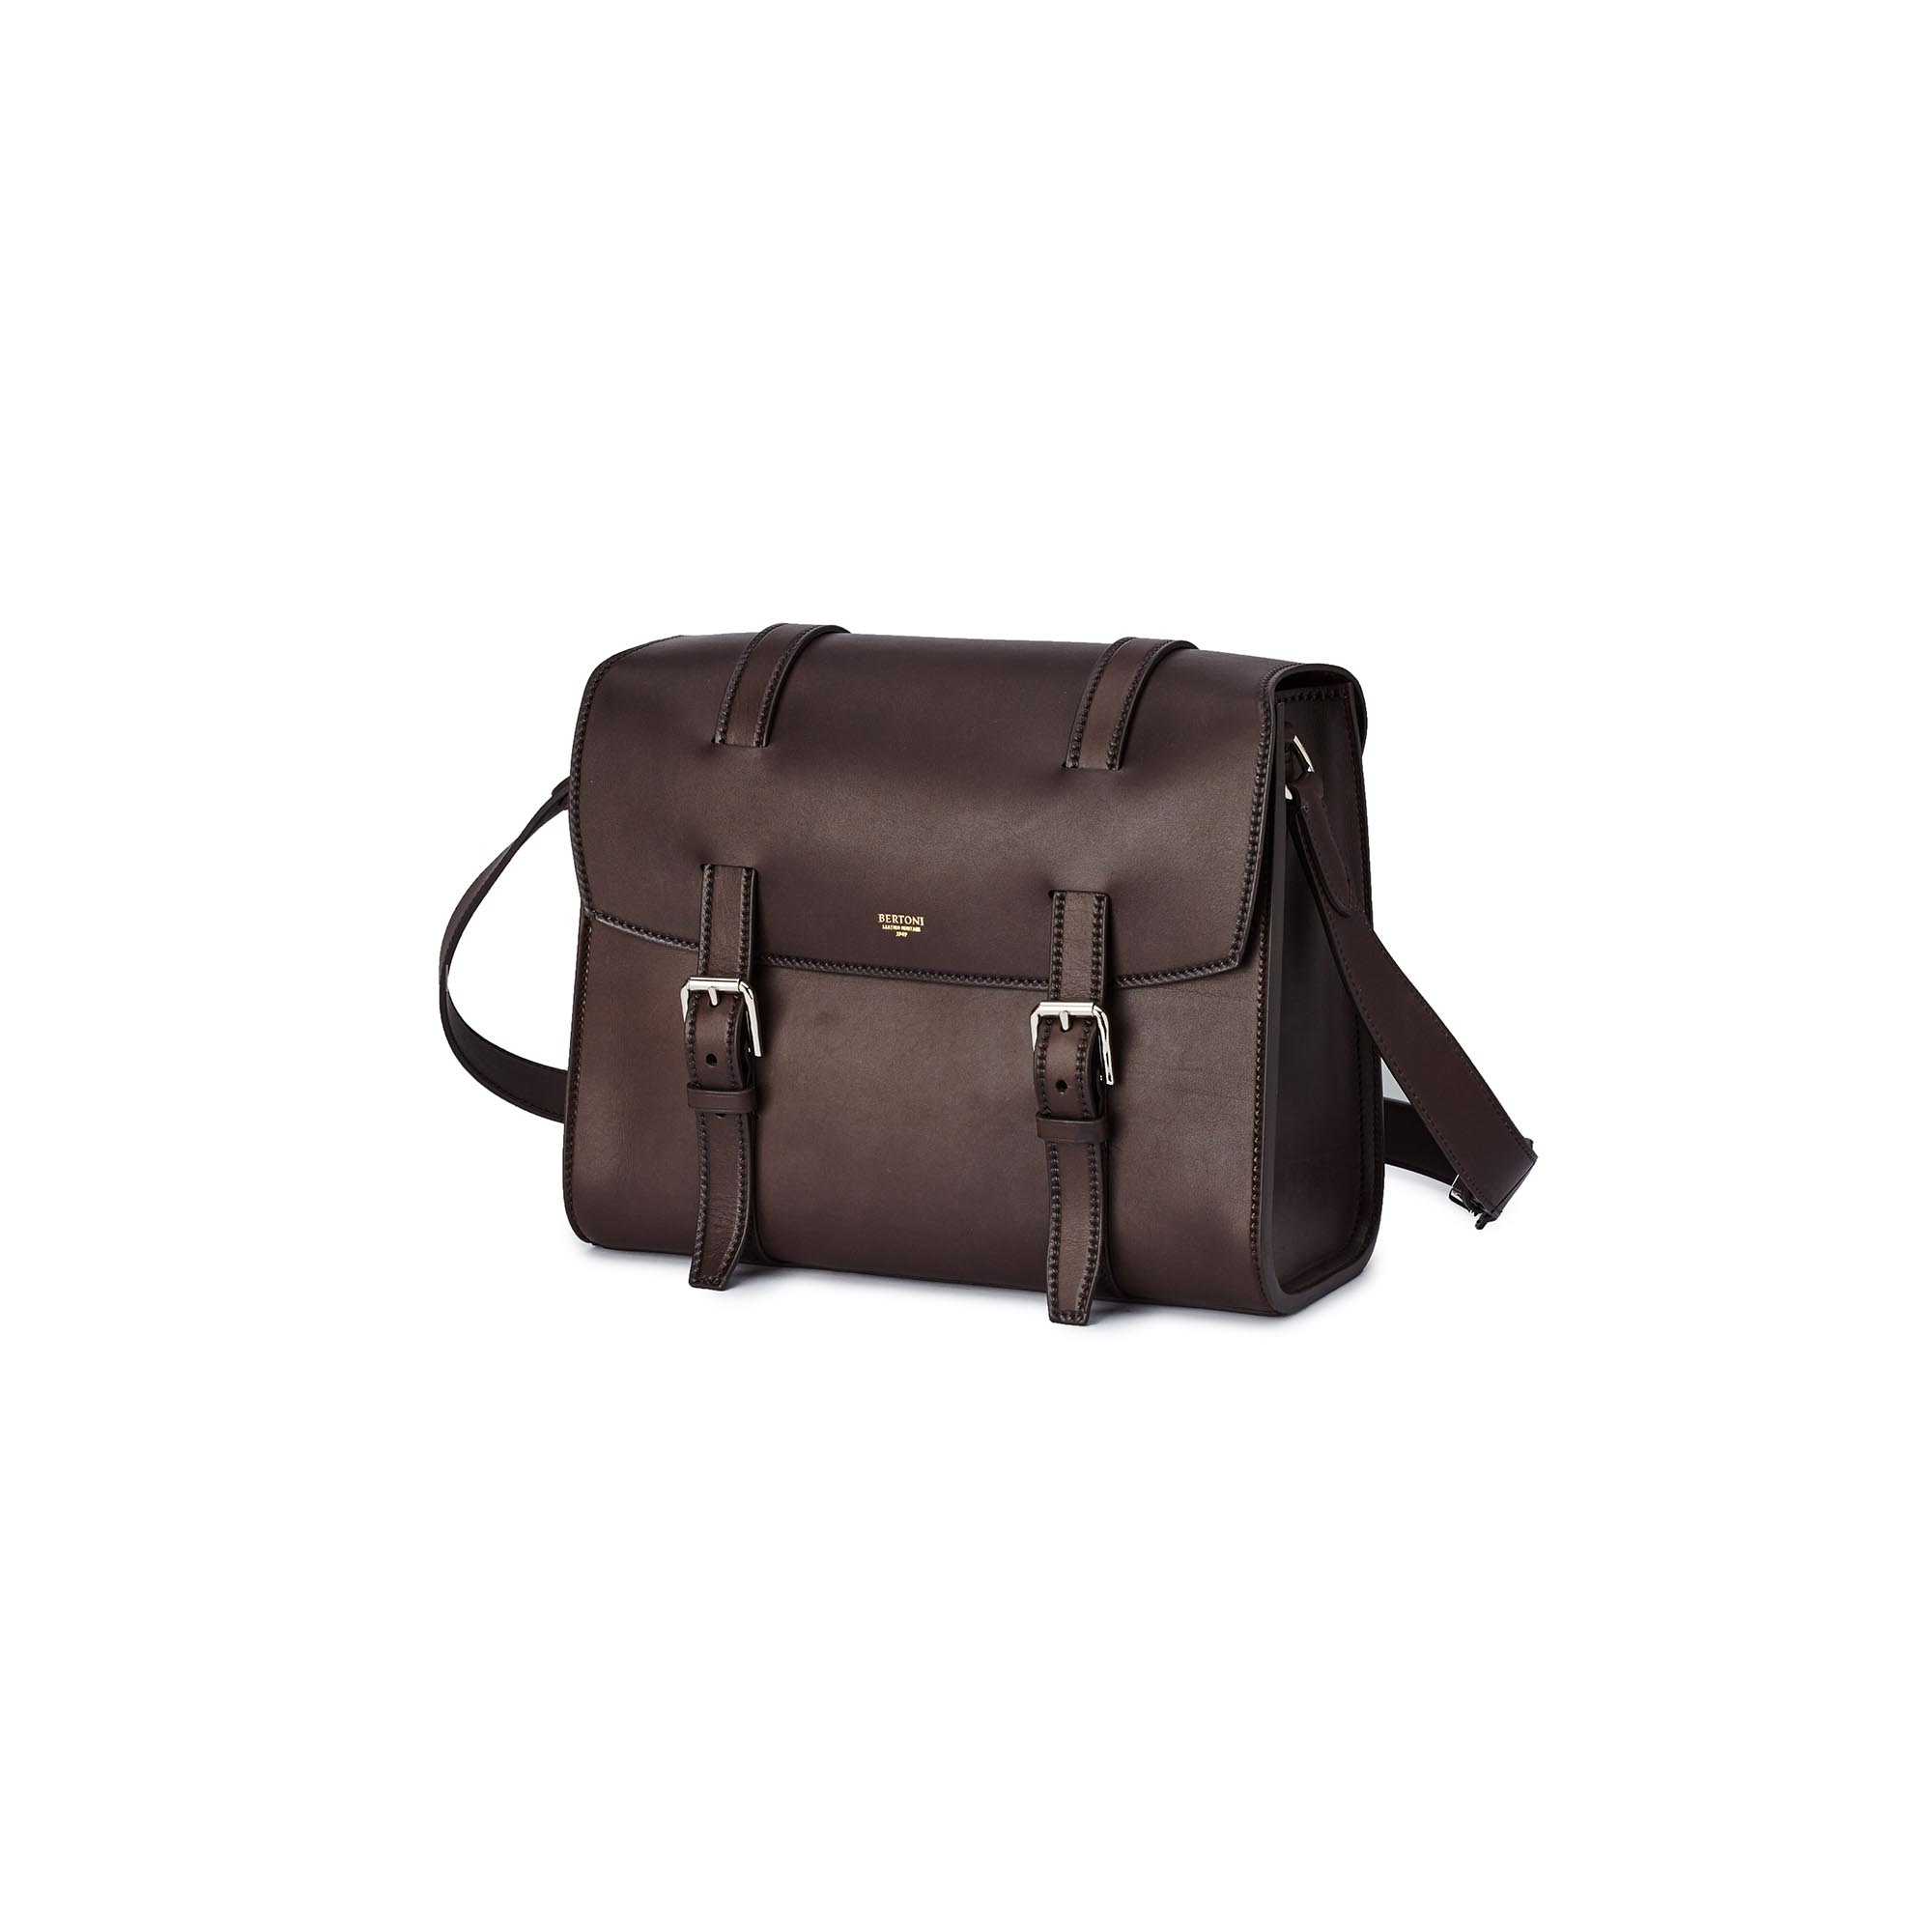 Signature-Messenger-dark-brown-french-calf-bag-Bertoni-1949_01